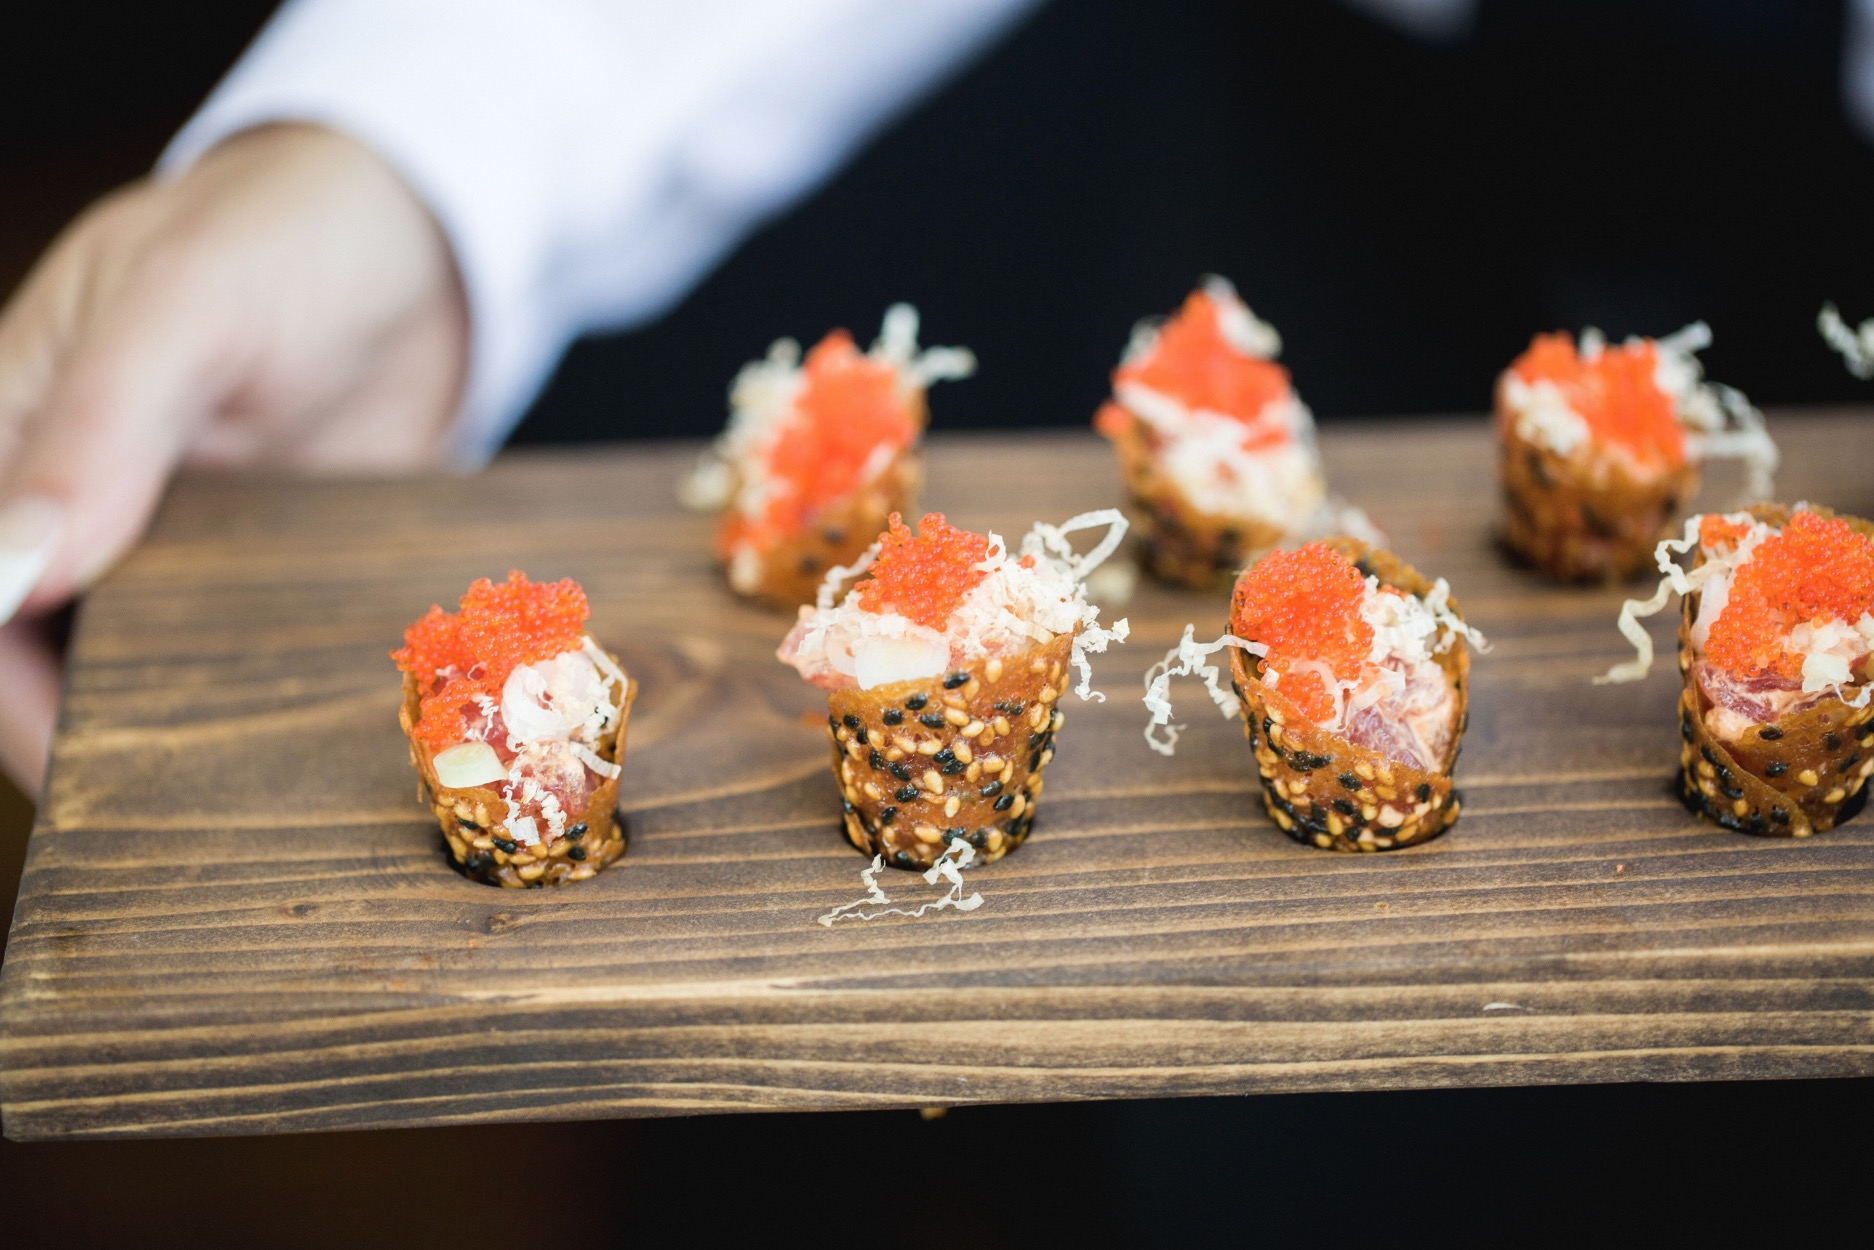 Wolfgang Puck Catering Services Washington D.C.